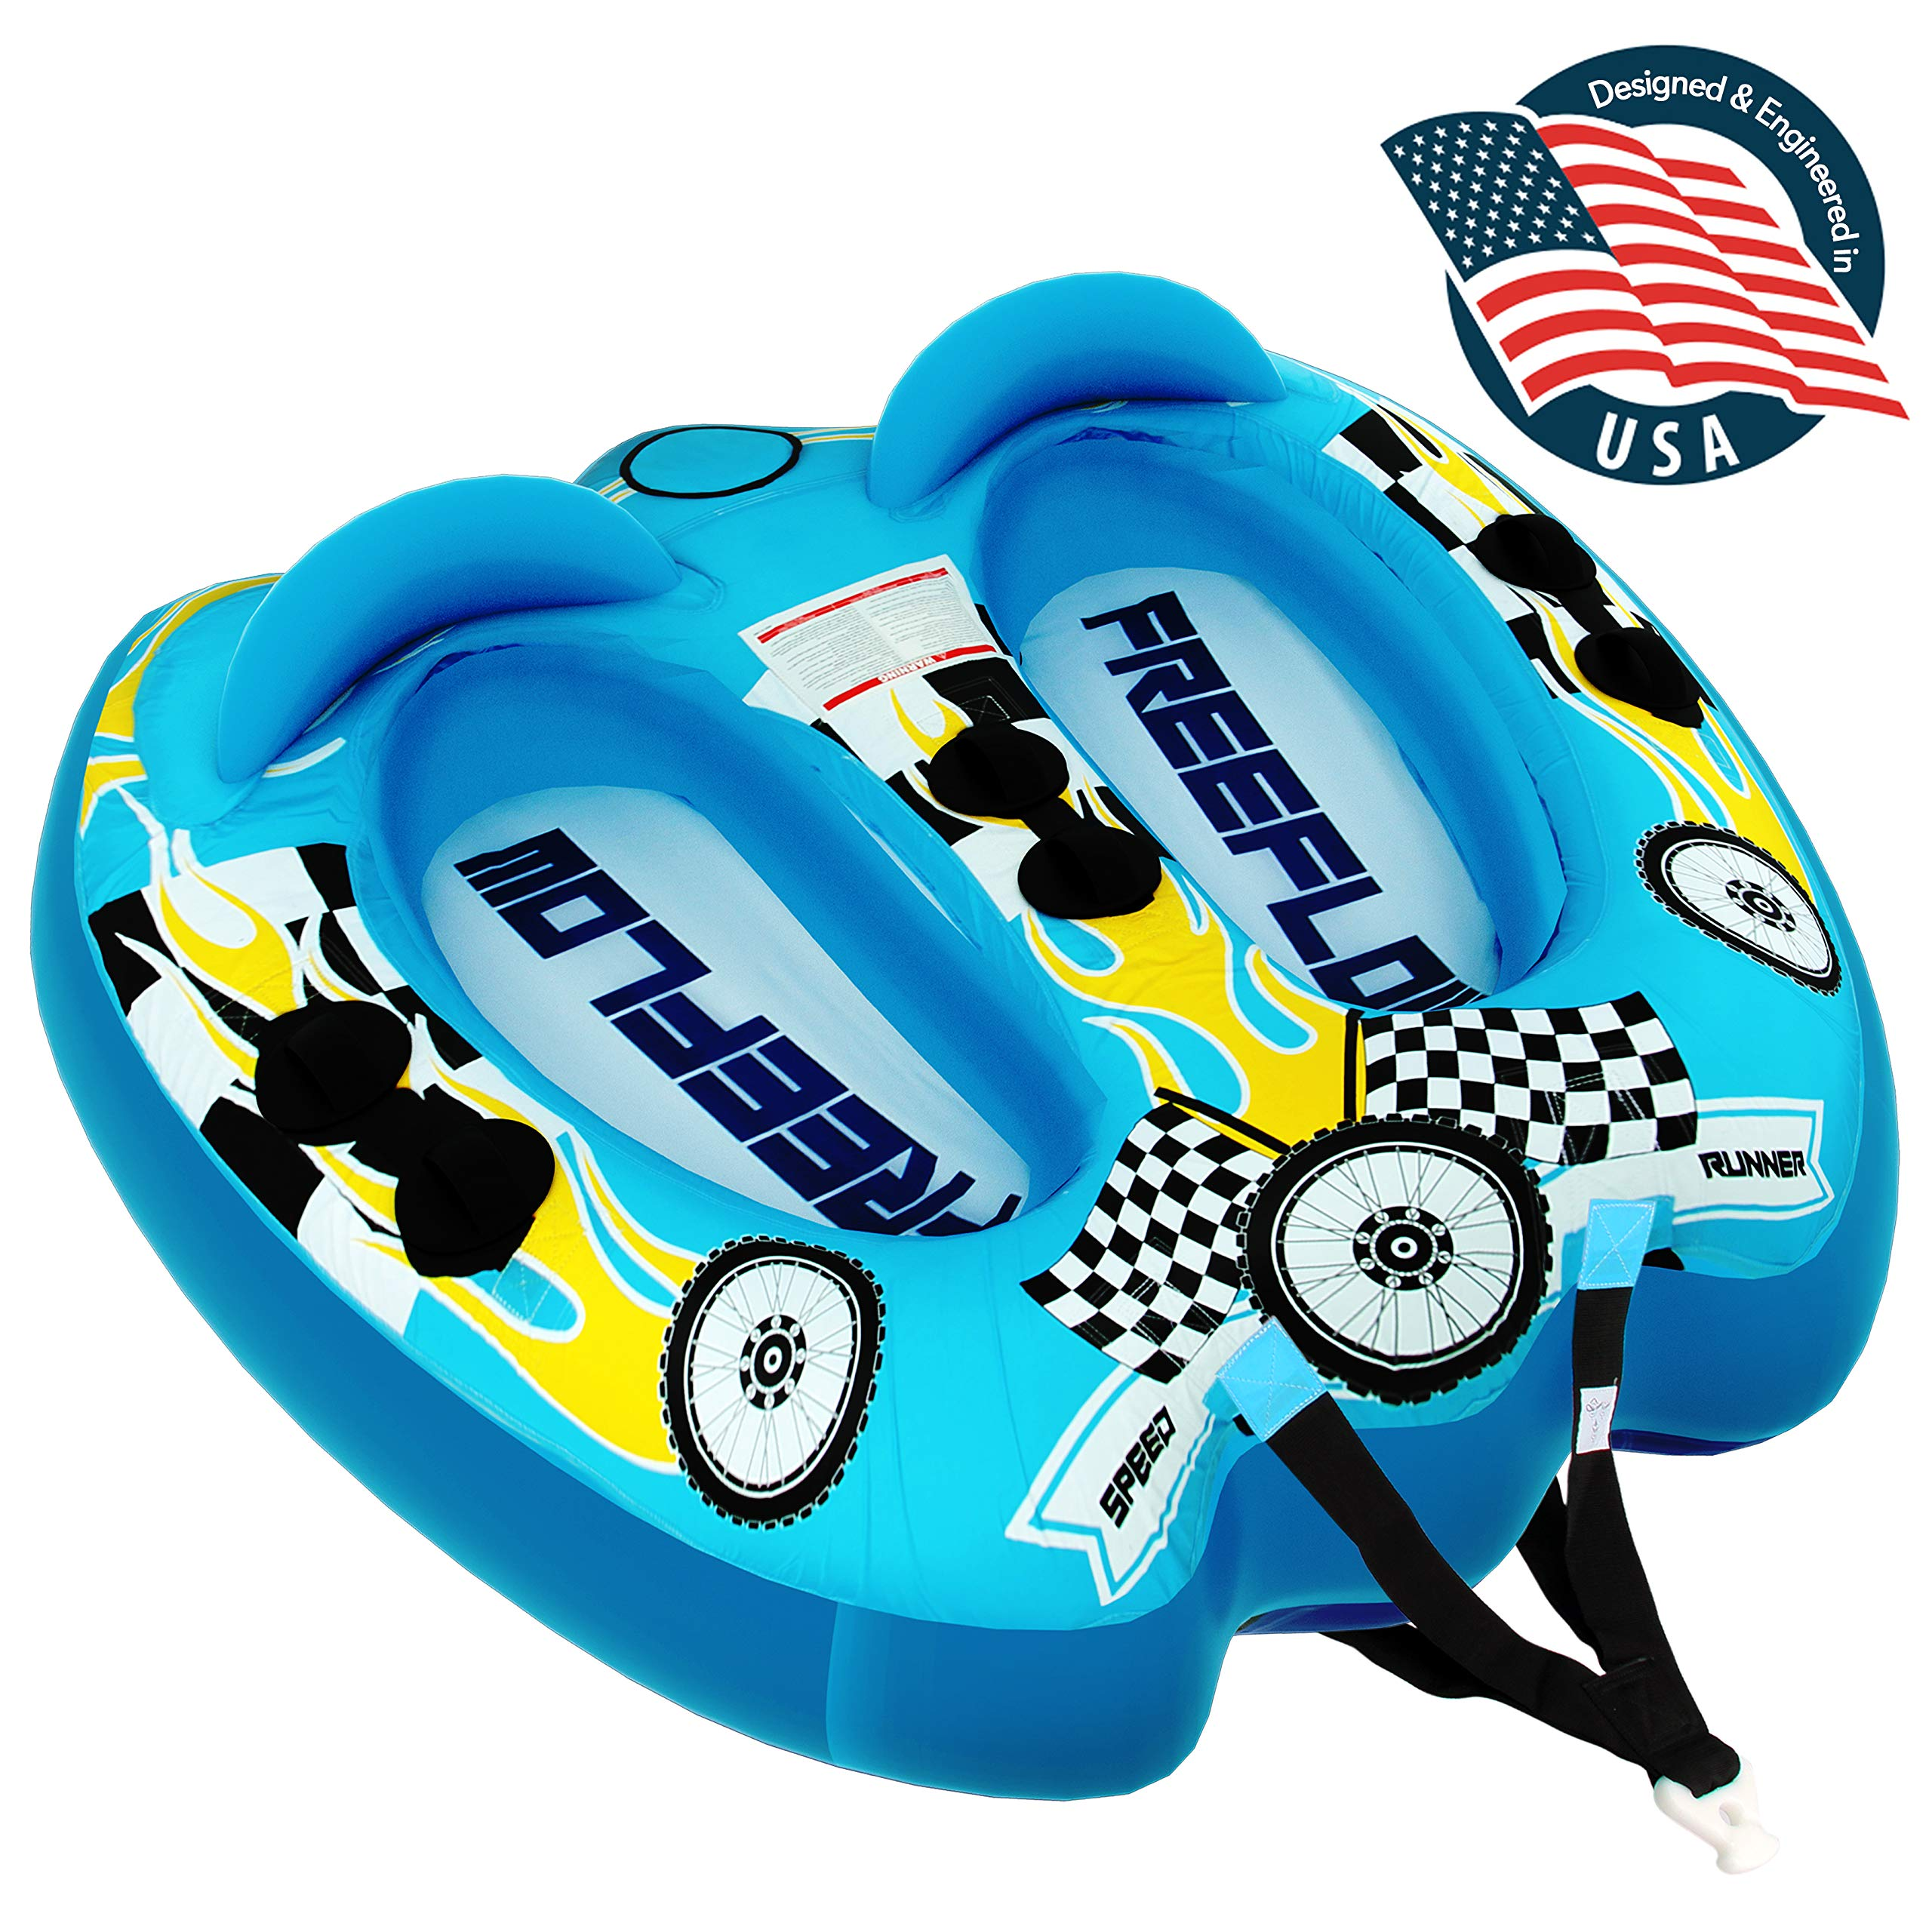 Watersports Inflatable Towable Booster Tube - Two Person Water Boating Float Tow Raft, Inflatable Pull Boats/Tubes/Towables w/ Dual Seats, PVC Bladder, Foam Pad, Nylon Handles - SereneLife SLTOWBL10 by SereneLife